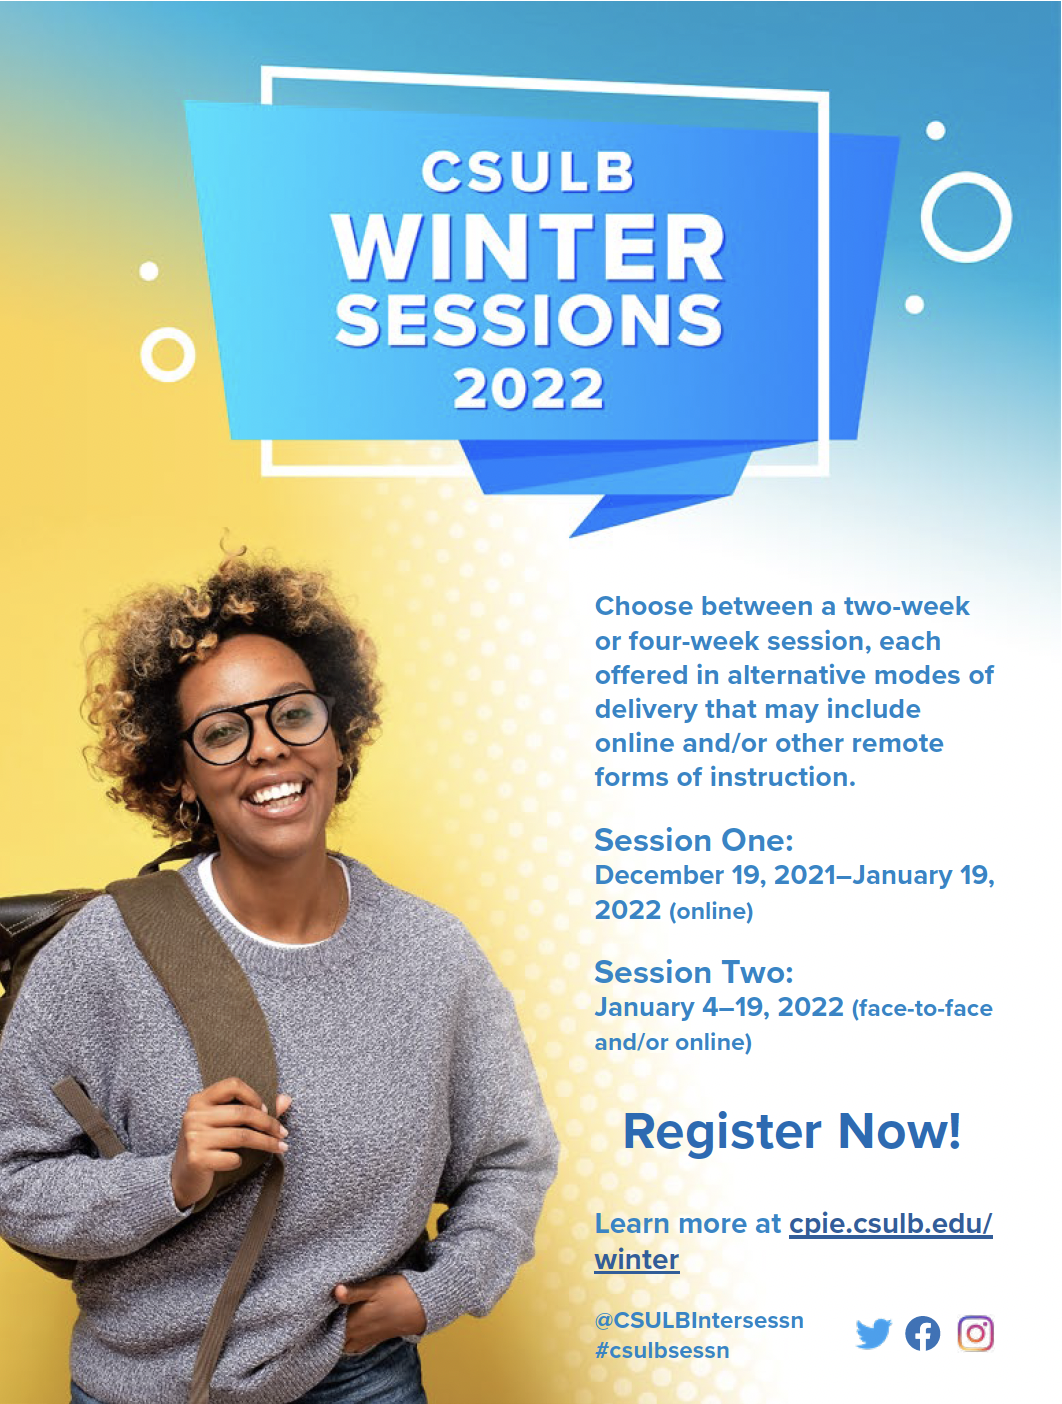 Winter session information